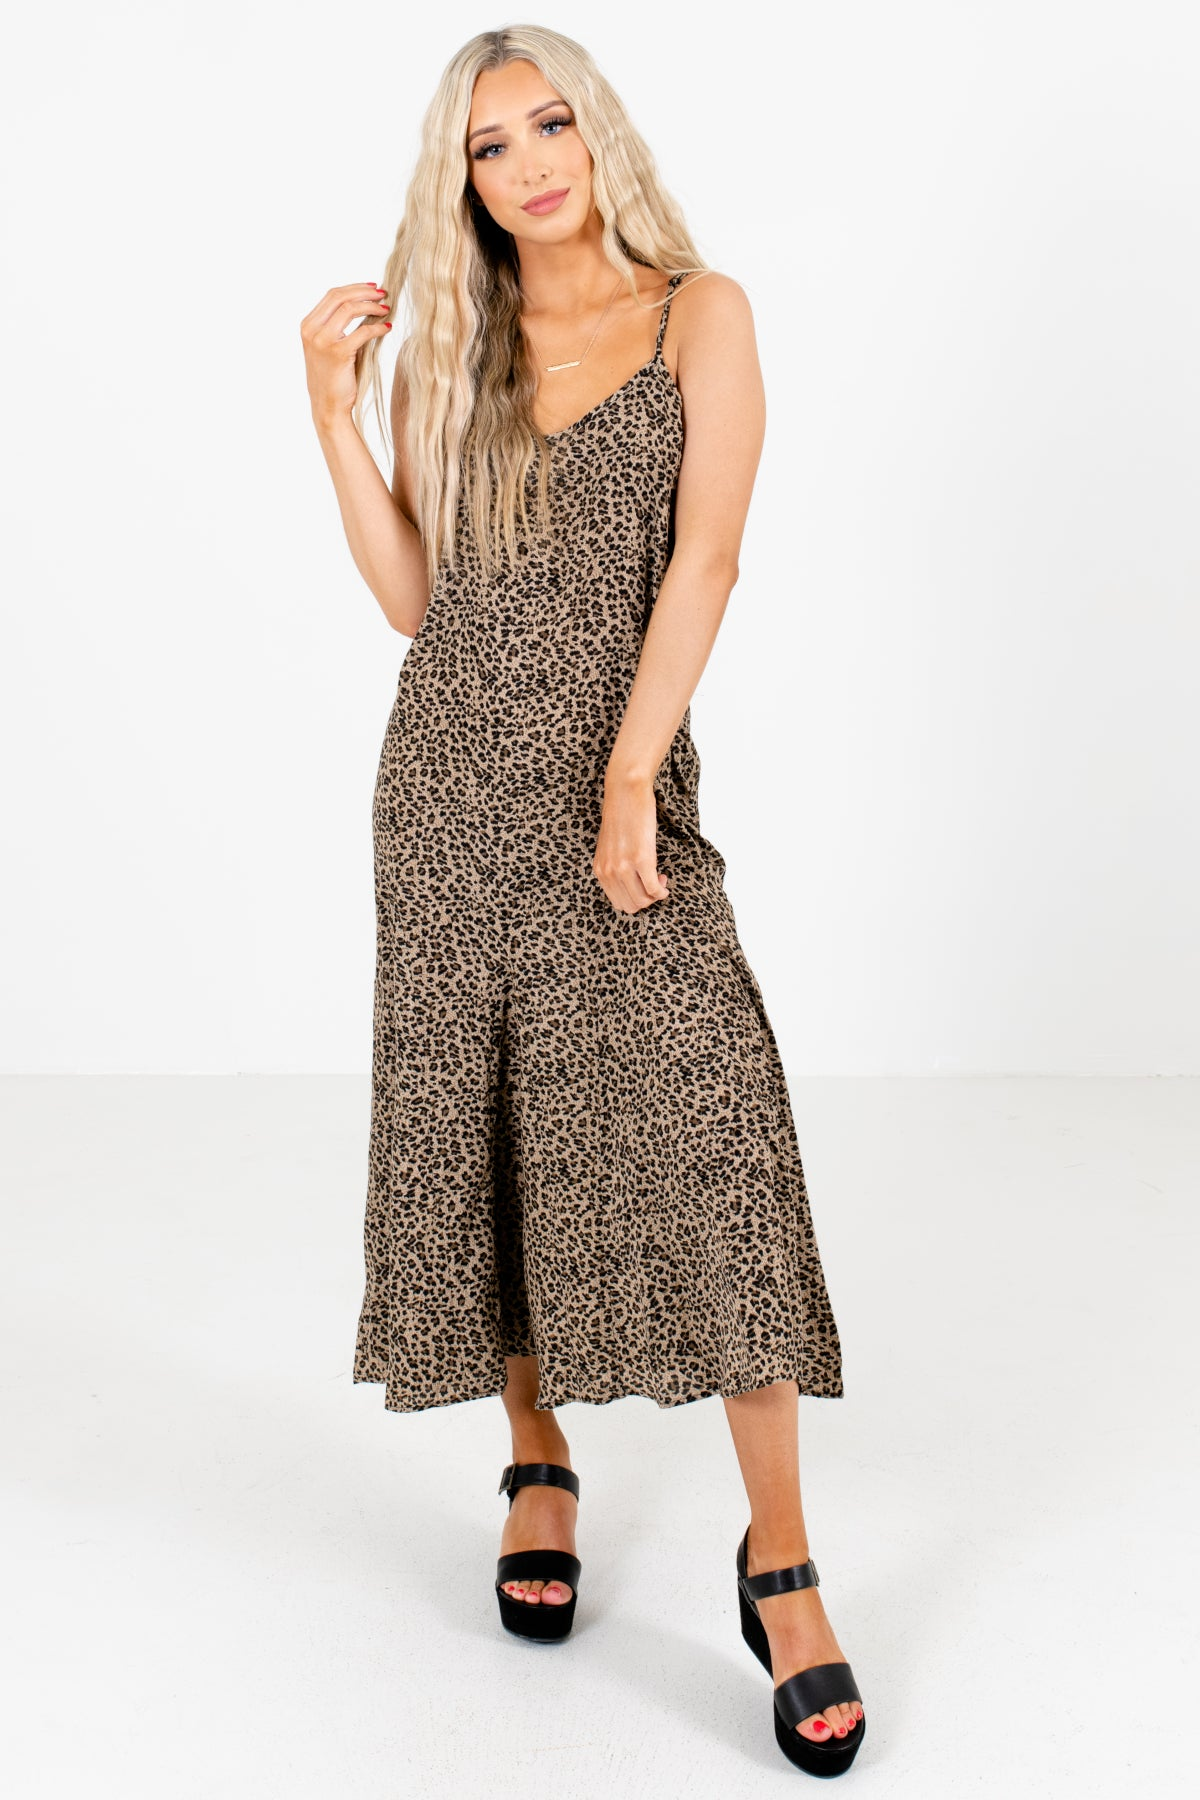 Brown Leopard Print Patterned Boutique Midi Dresses for Women